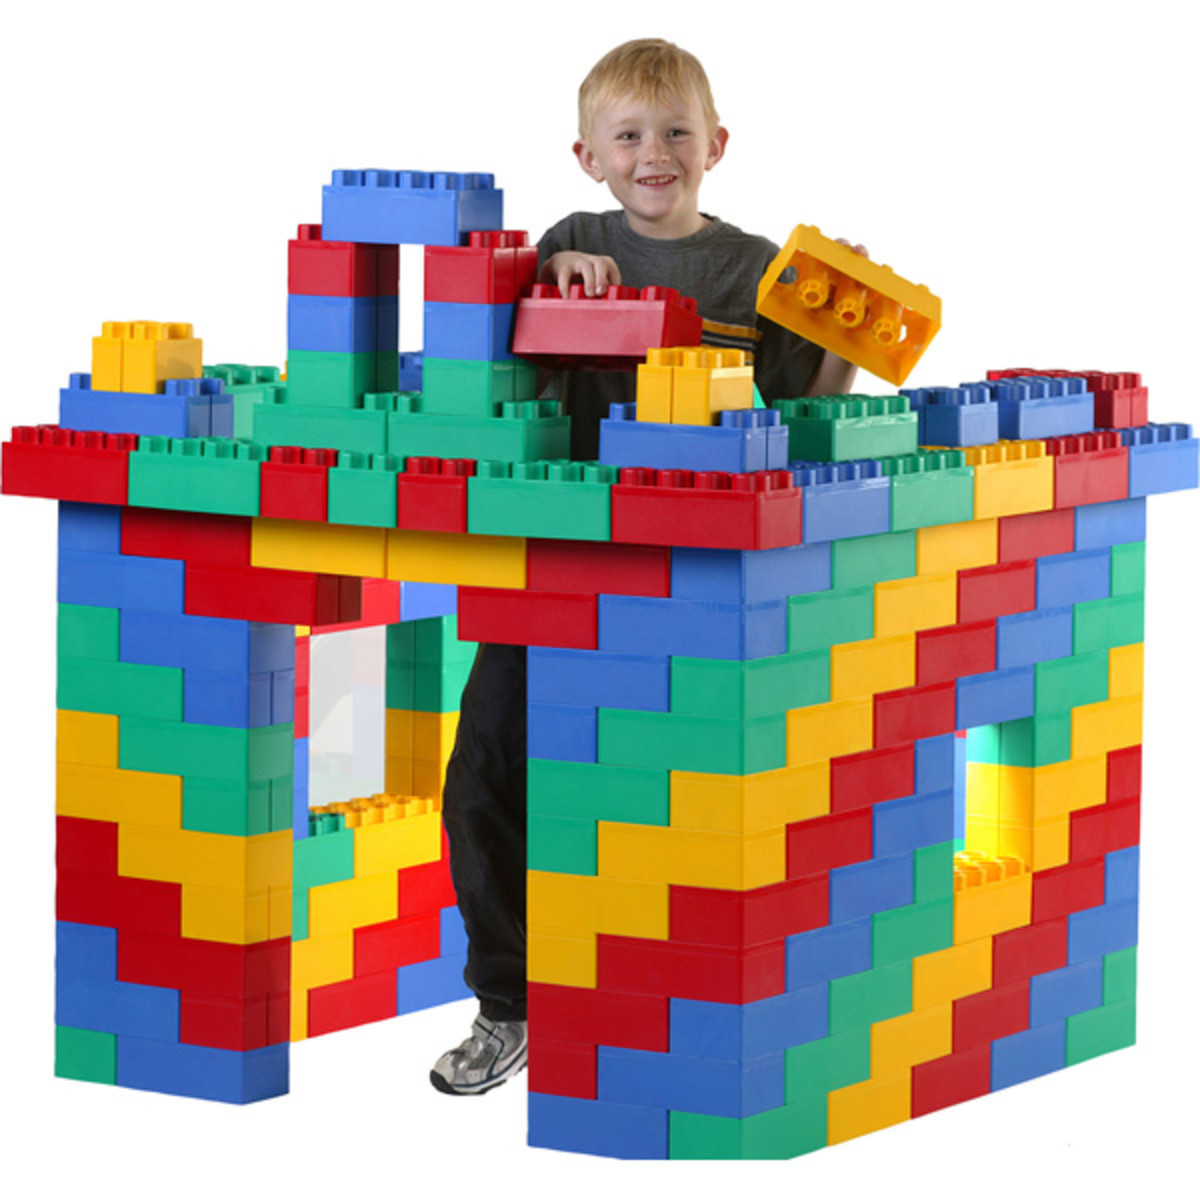 These Jumbo Blocks from Kids Adventure are fun for making forts, planes, and even temporary furniture.